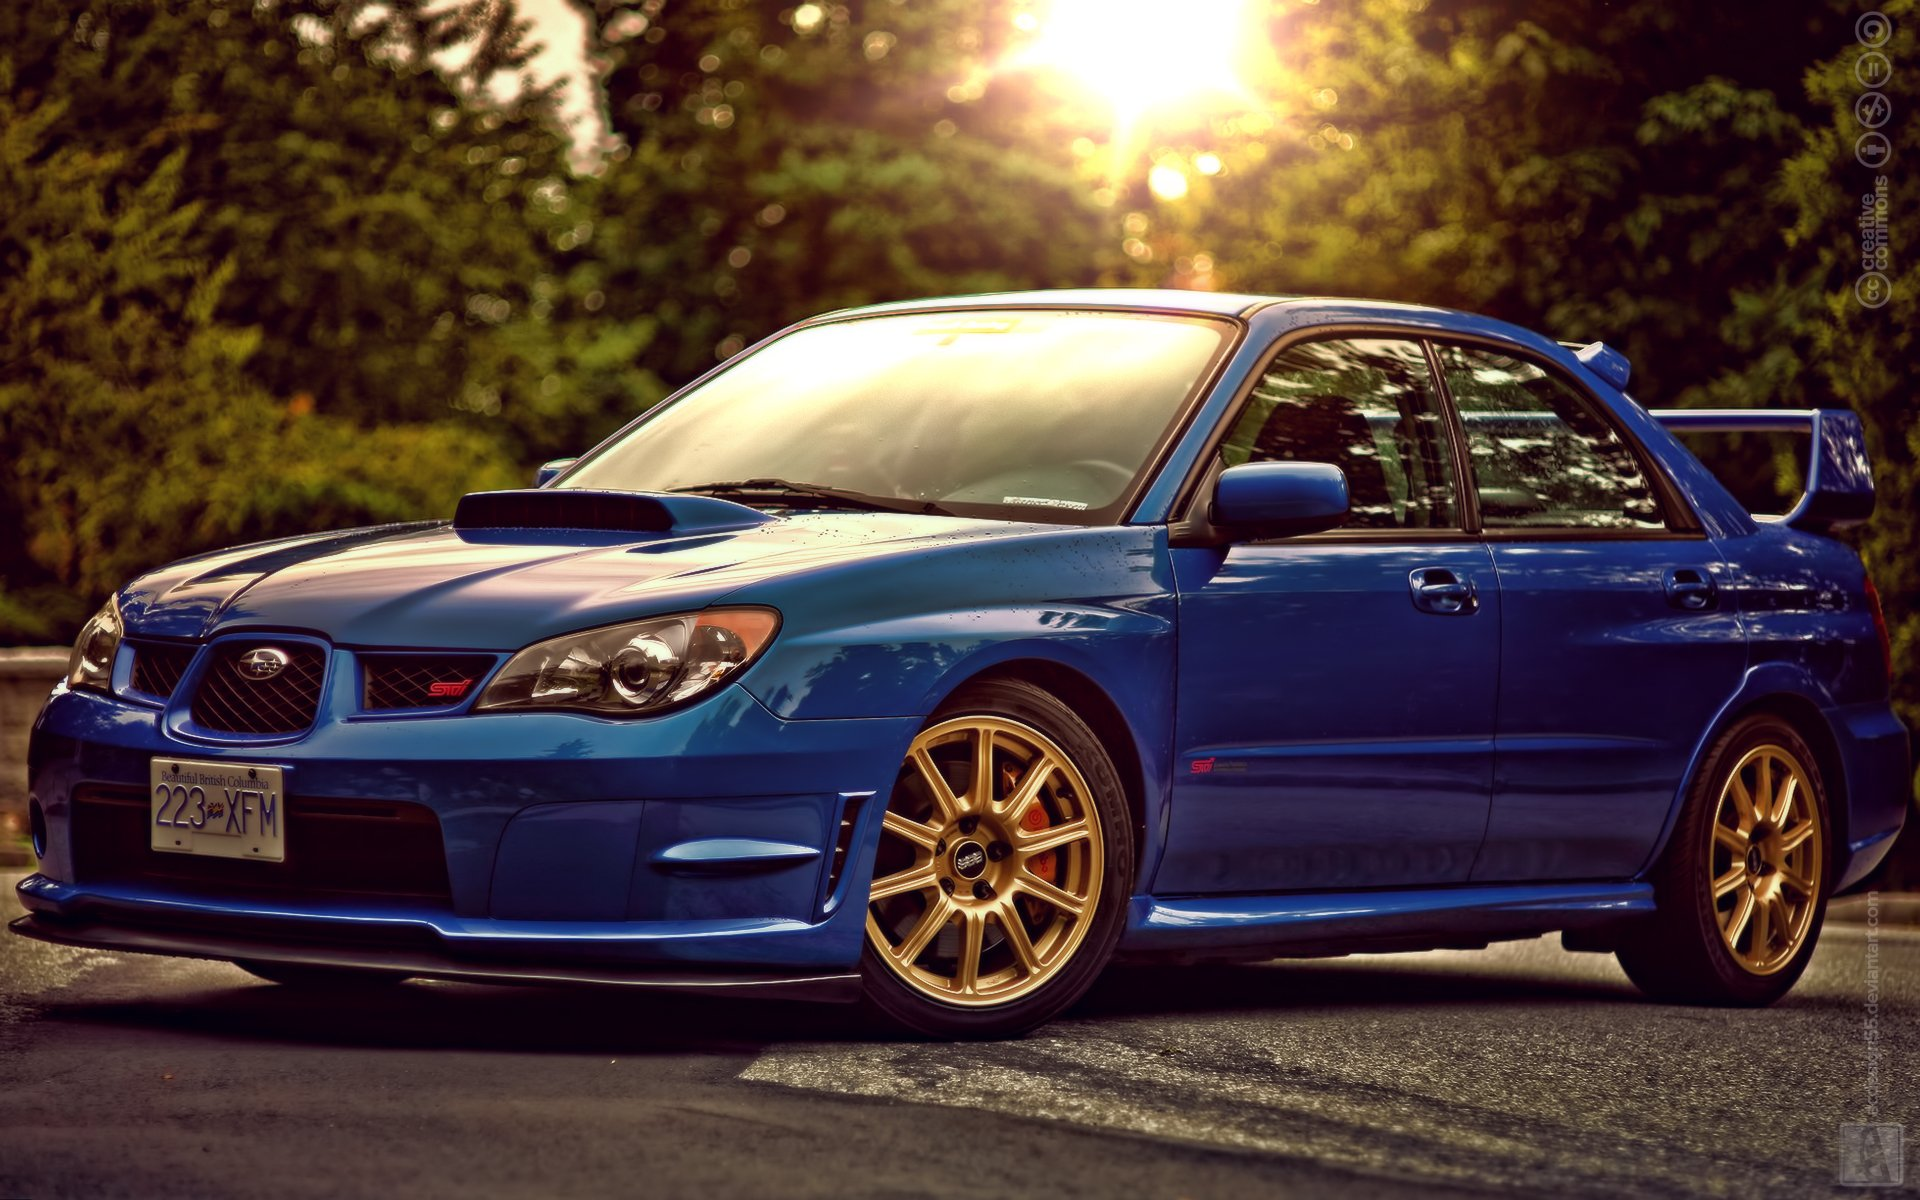 subaru impreza wrx sti blue wallpaper 1920x1200 747275. Black Bedroom Furniture Sets. Home Design Ideas